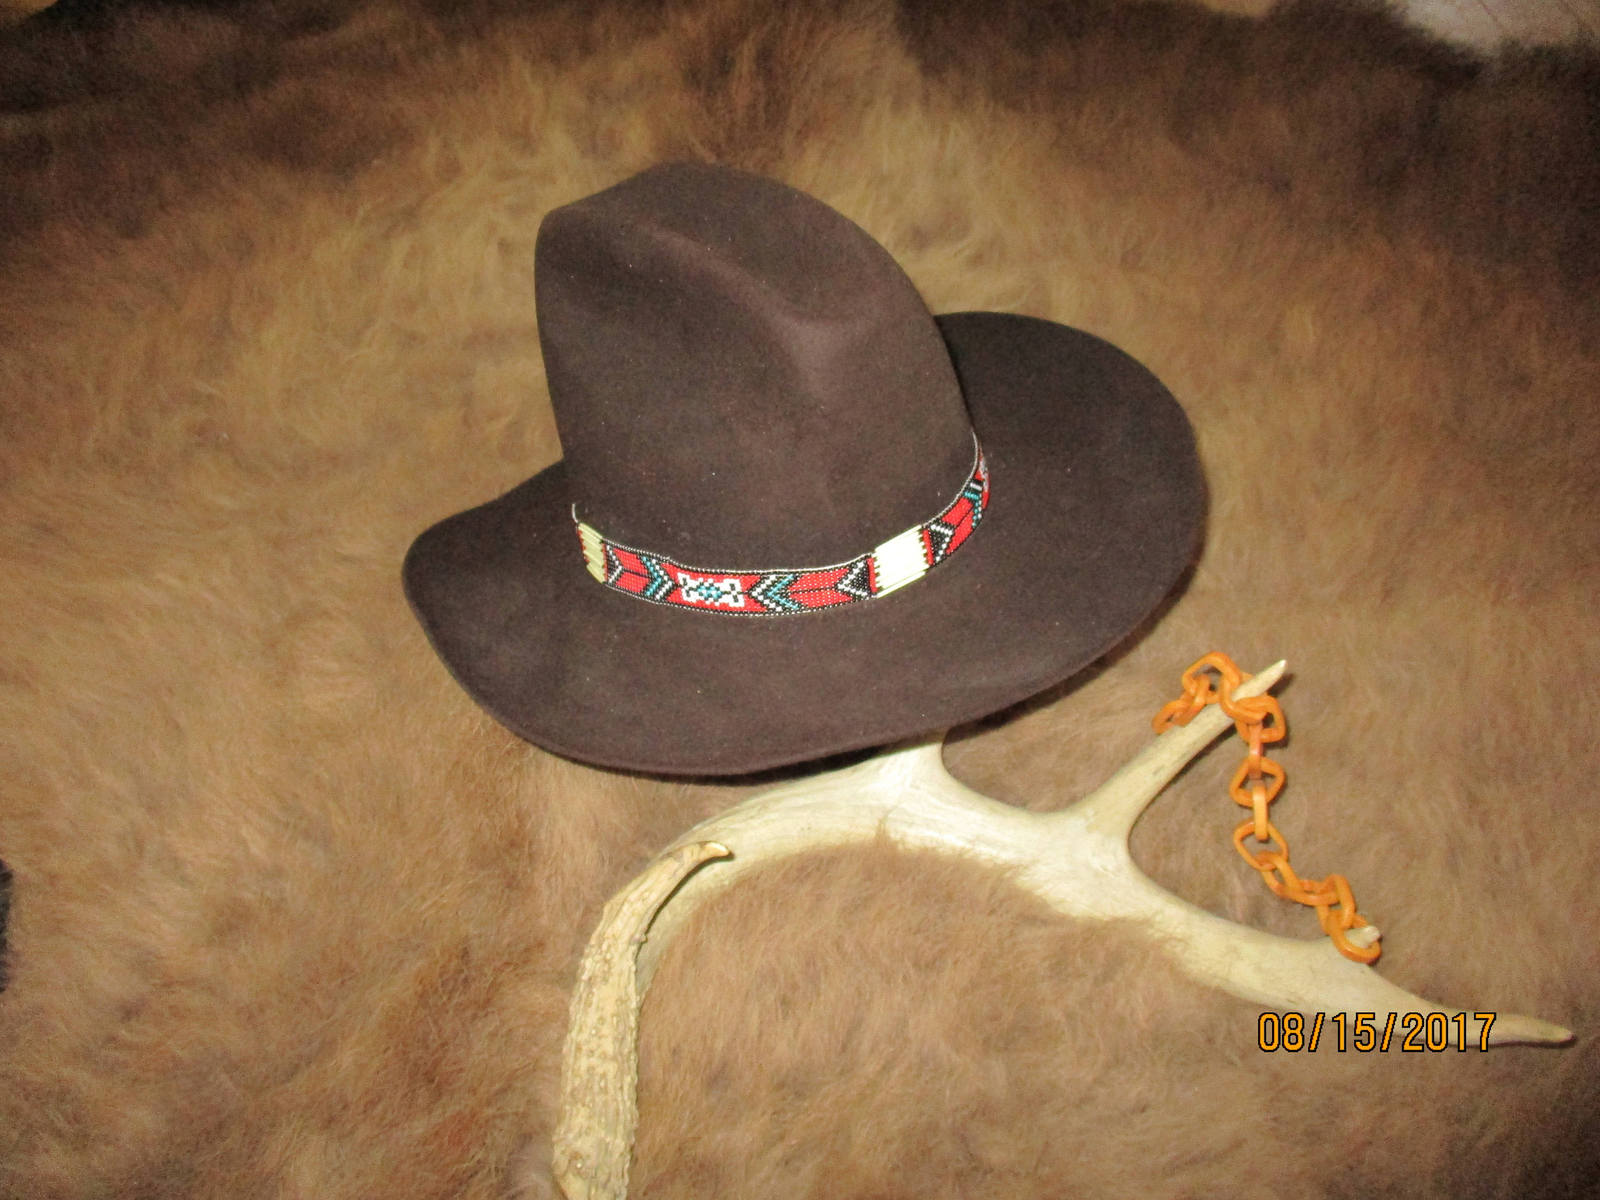 Custom Made Suede Braided Hatbands & Hatbands with Porcupine Quills, Glass Beads